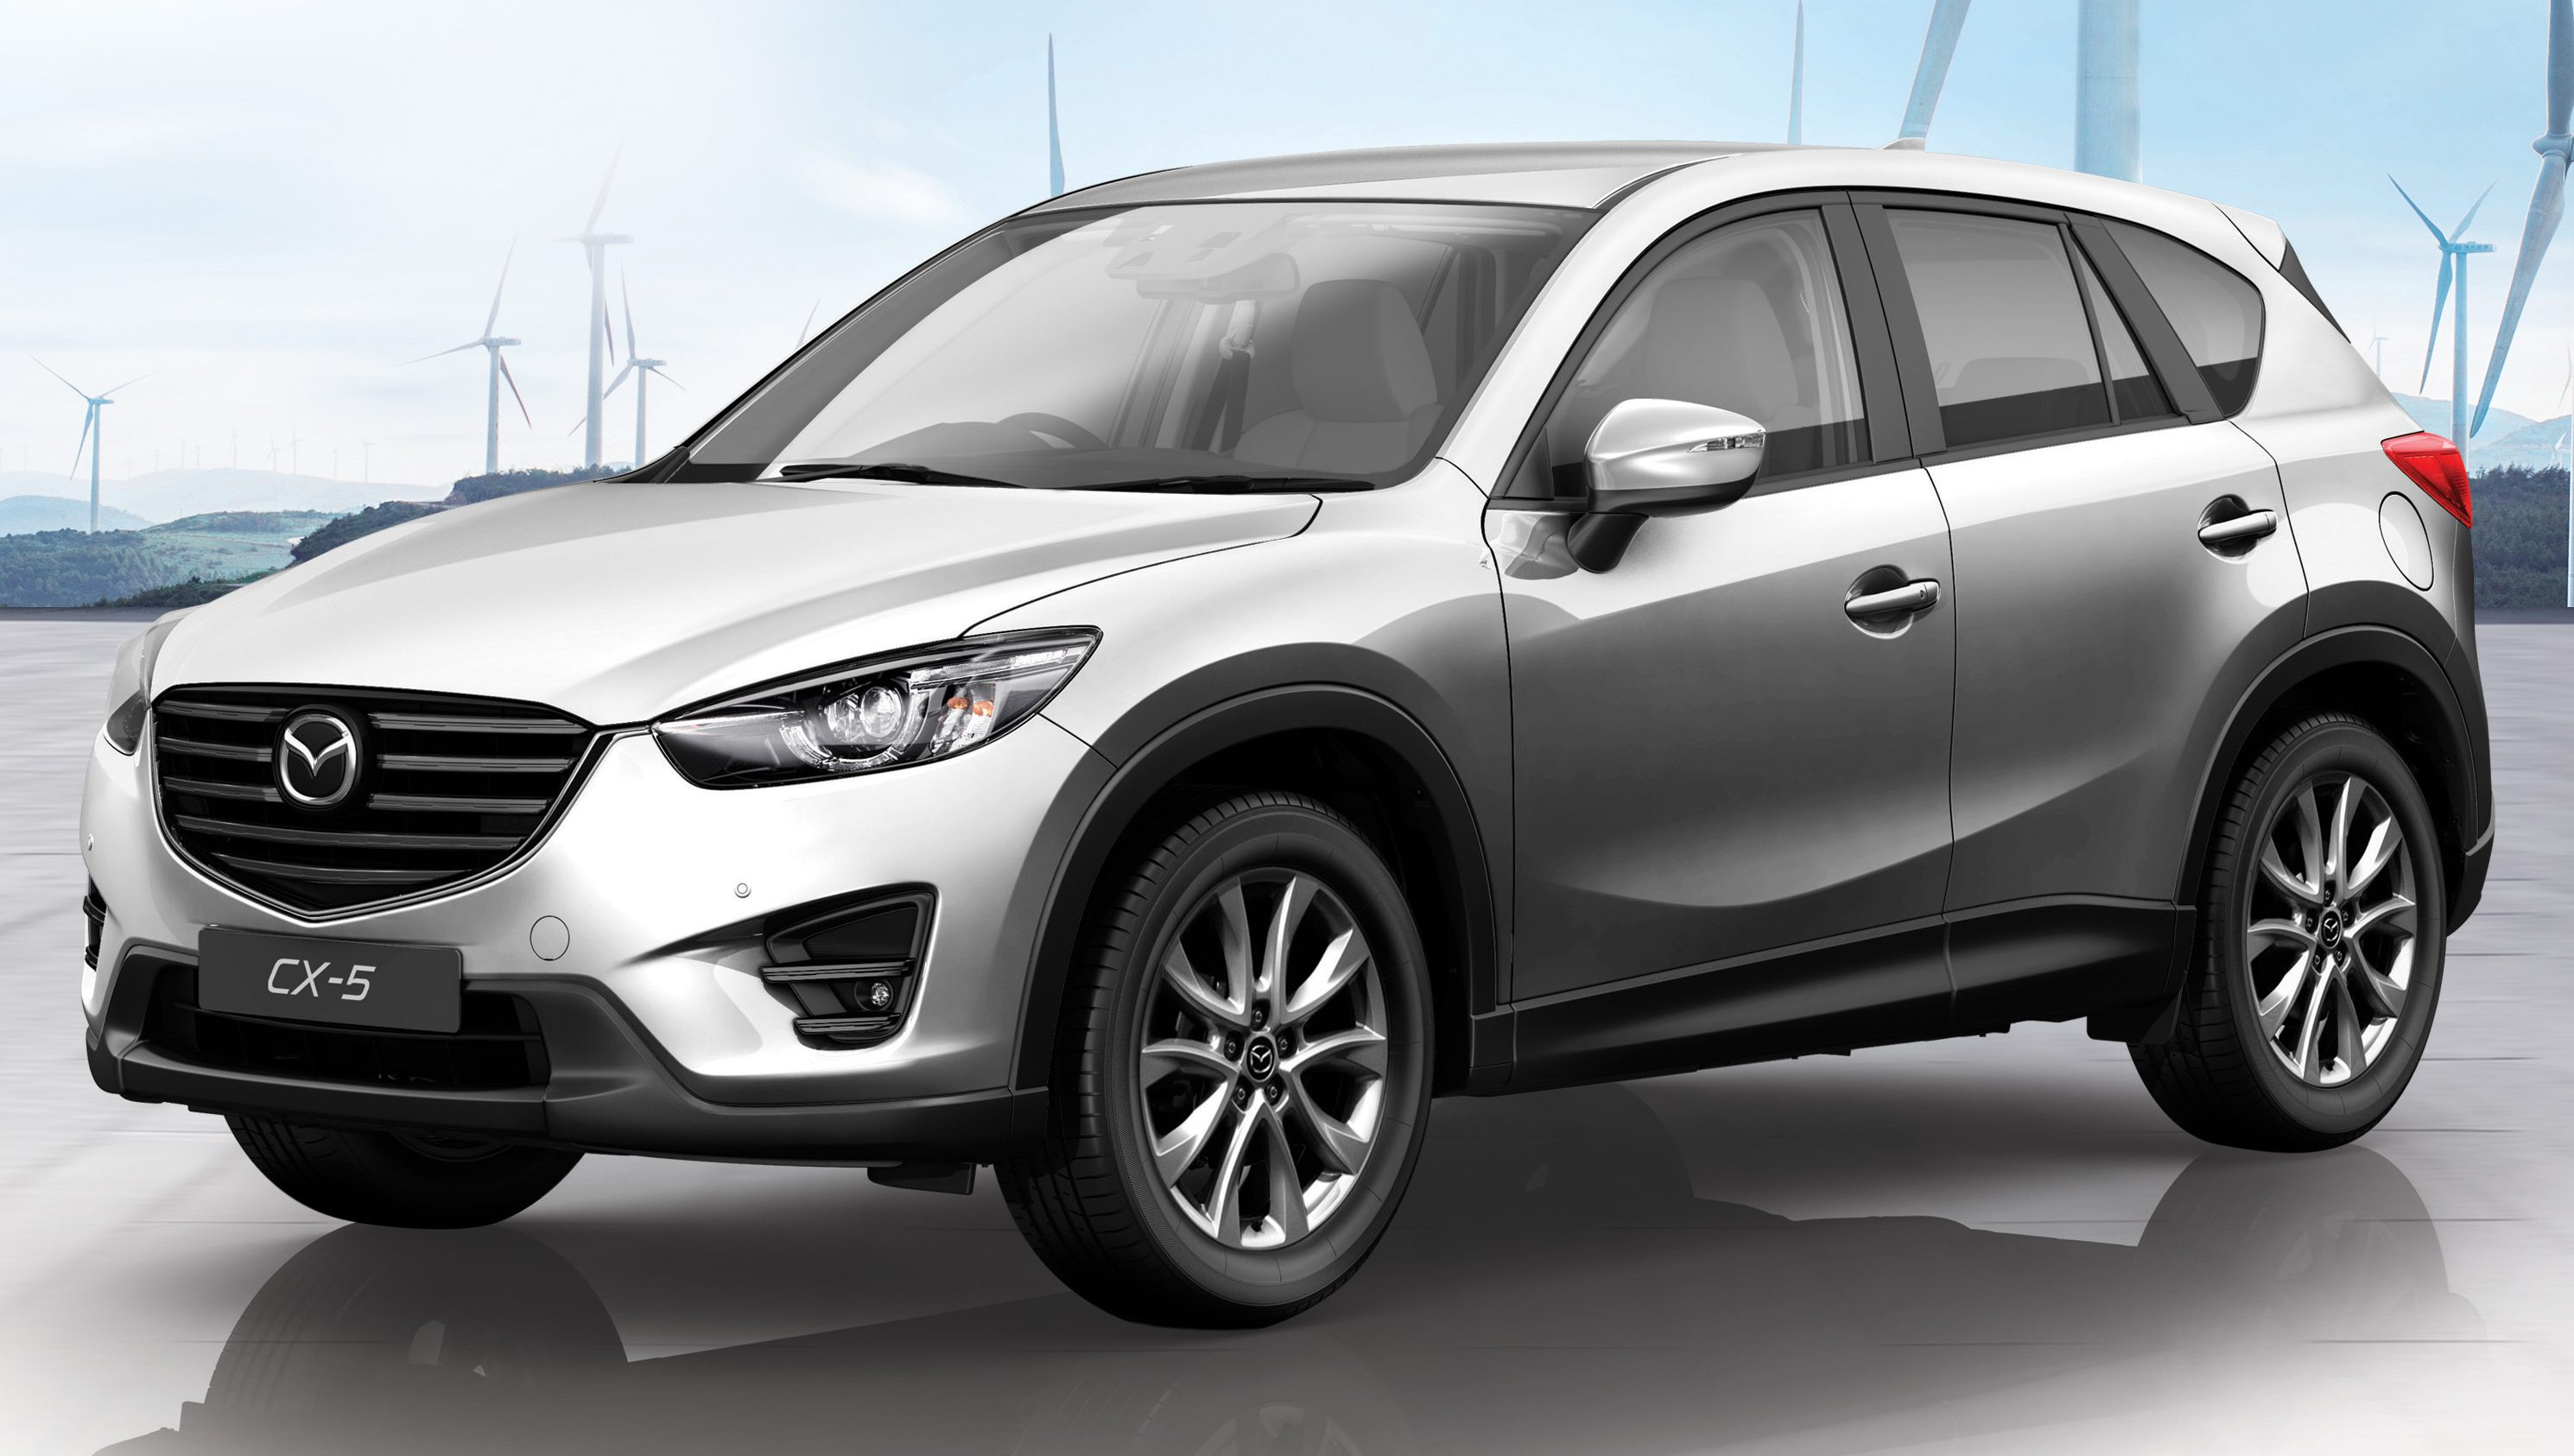 mazda cx 5 2 2l skyactiv d diesel launched rm162k image 521676. Black Bedroom Furniture Sets. Home Design Ideas